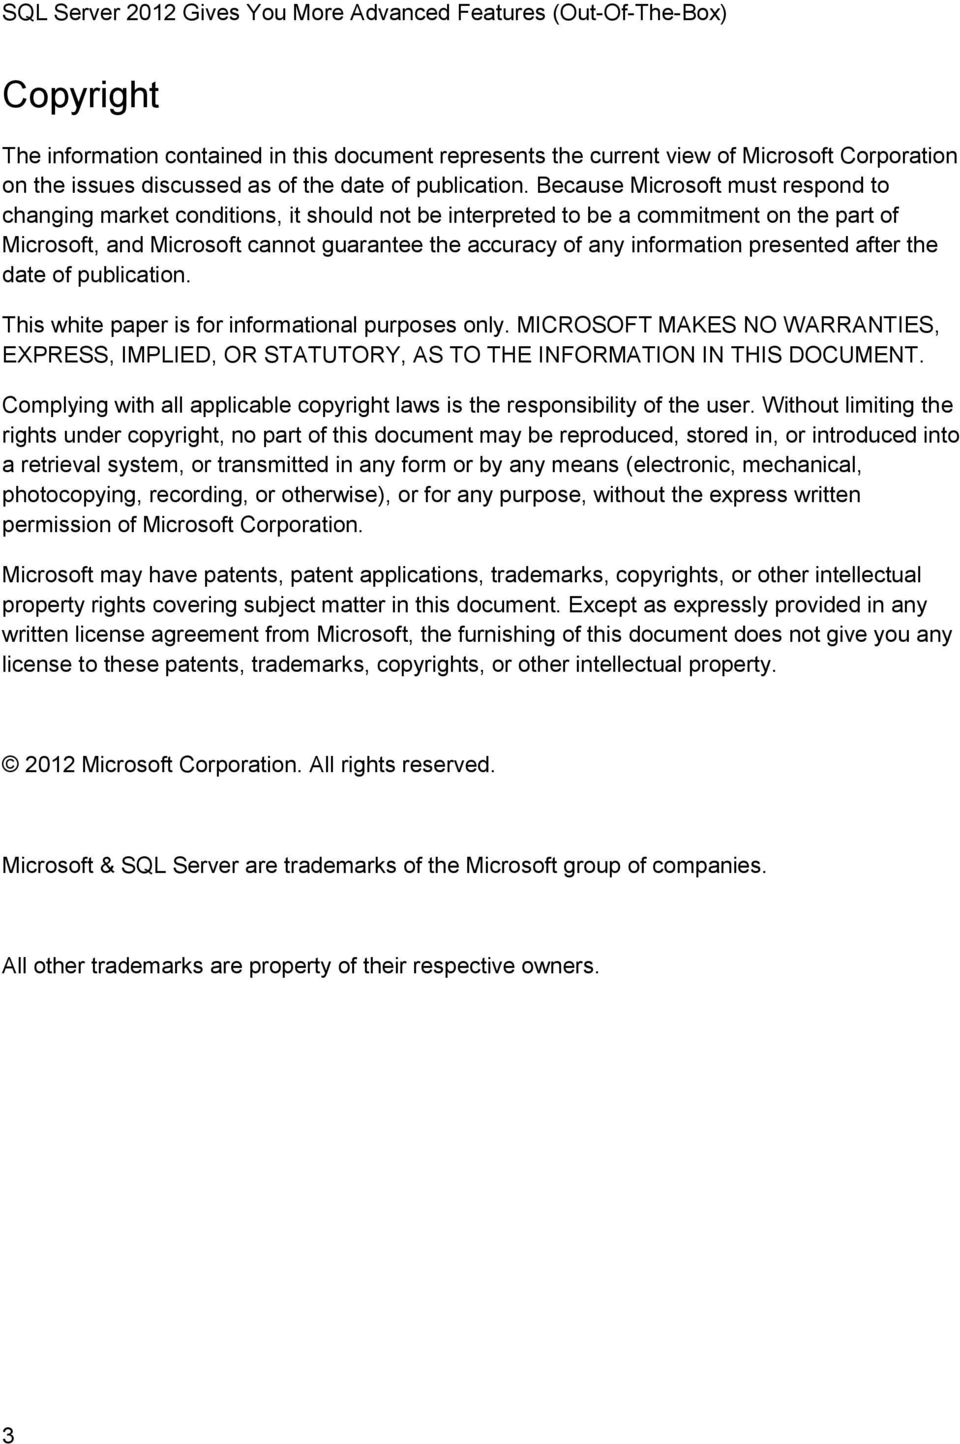 presented after the date of publication. This white paper is for informational purposes only. MICROSOFT MAKES NO WARRANTIES, EXPRESS, IMPLIED, OR STATUTORY, AS TO THE INFORMATION IN THIS DOCUMENT.